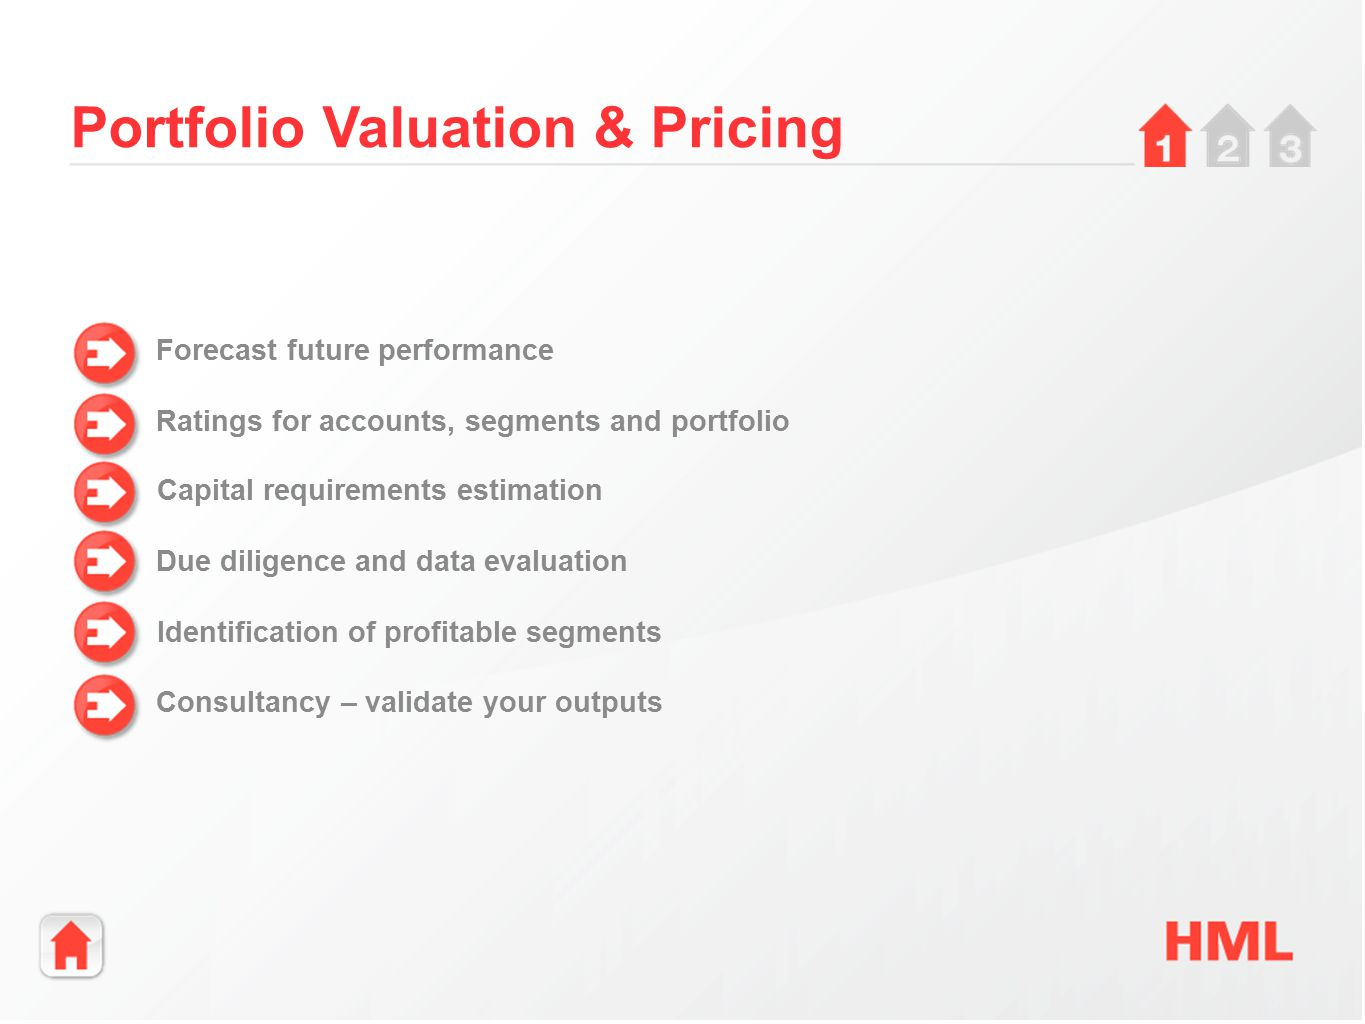 Portfolio Valuation & Pricing Forecast future performance Ratings for accounts, segments and portfolio Capital requirements estimation Due diligence and data evaluation Identification of profitable segments Consultancy – validate your outputs